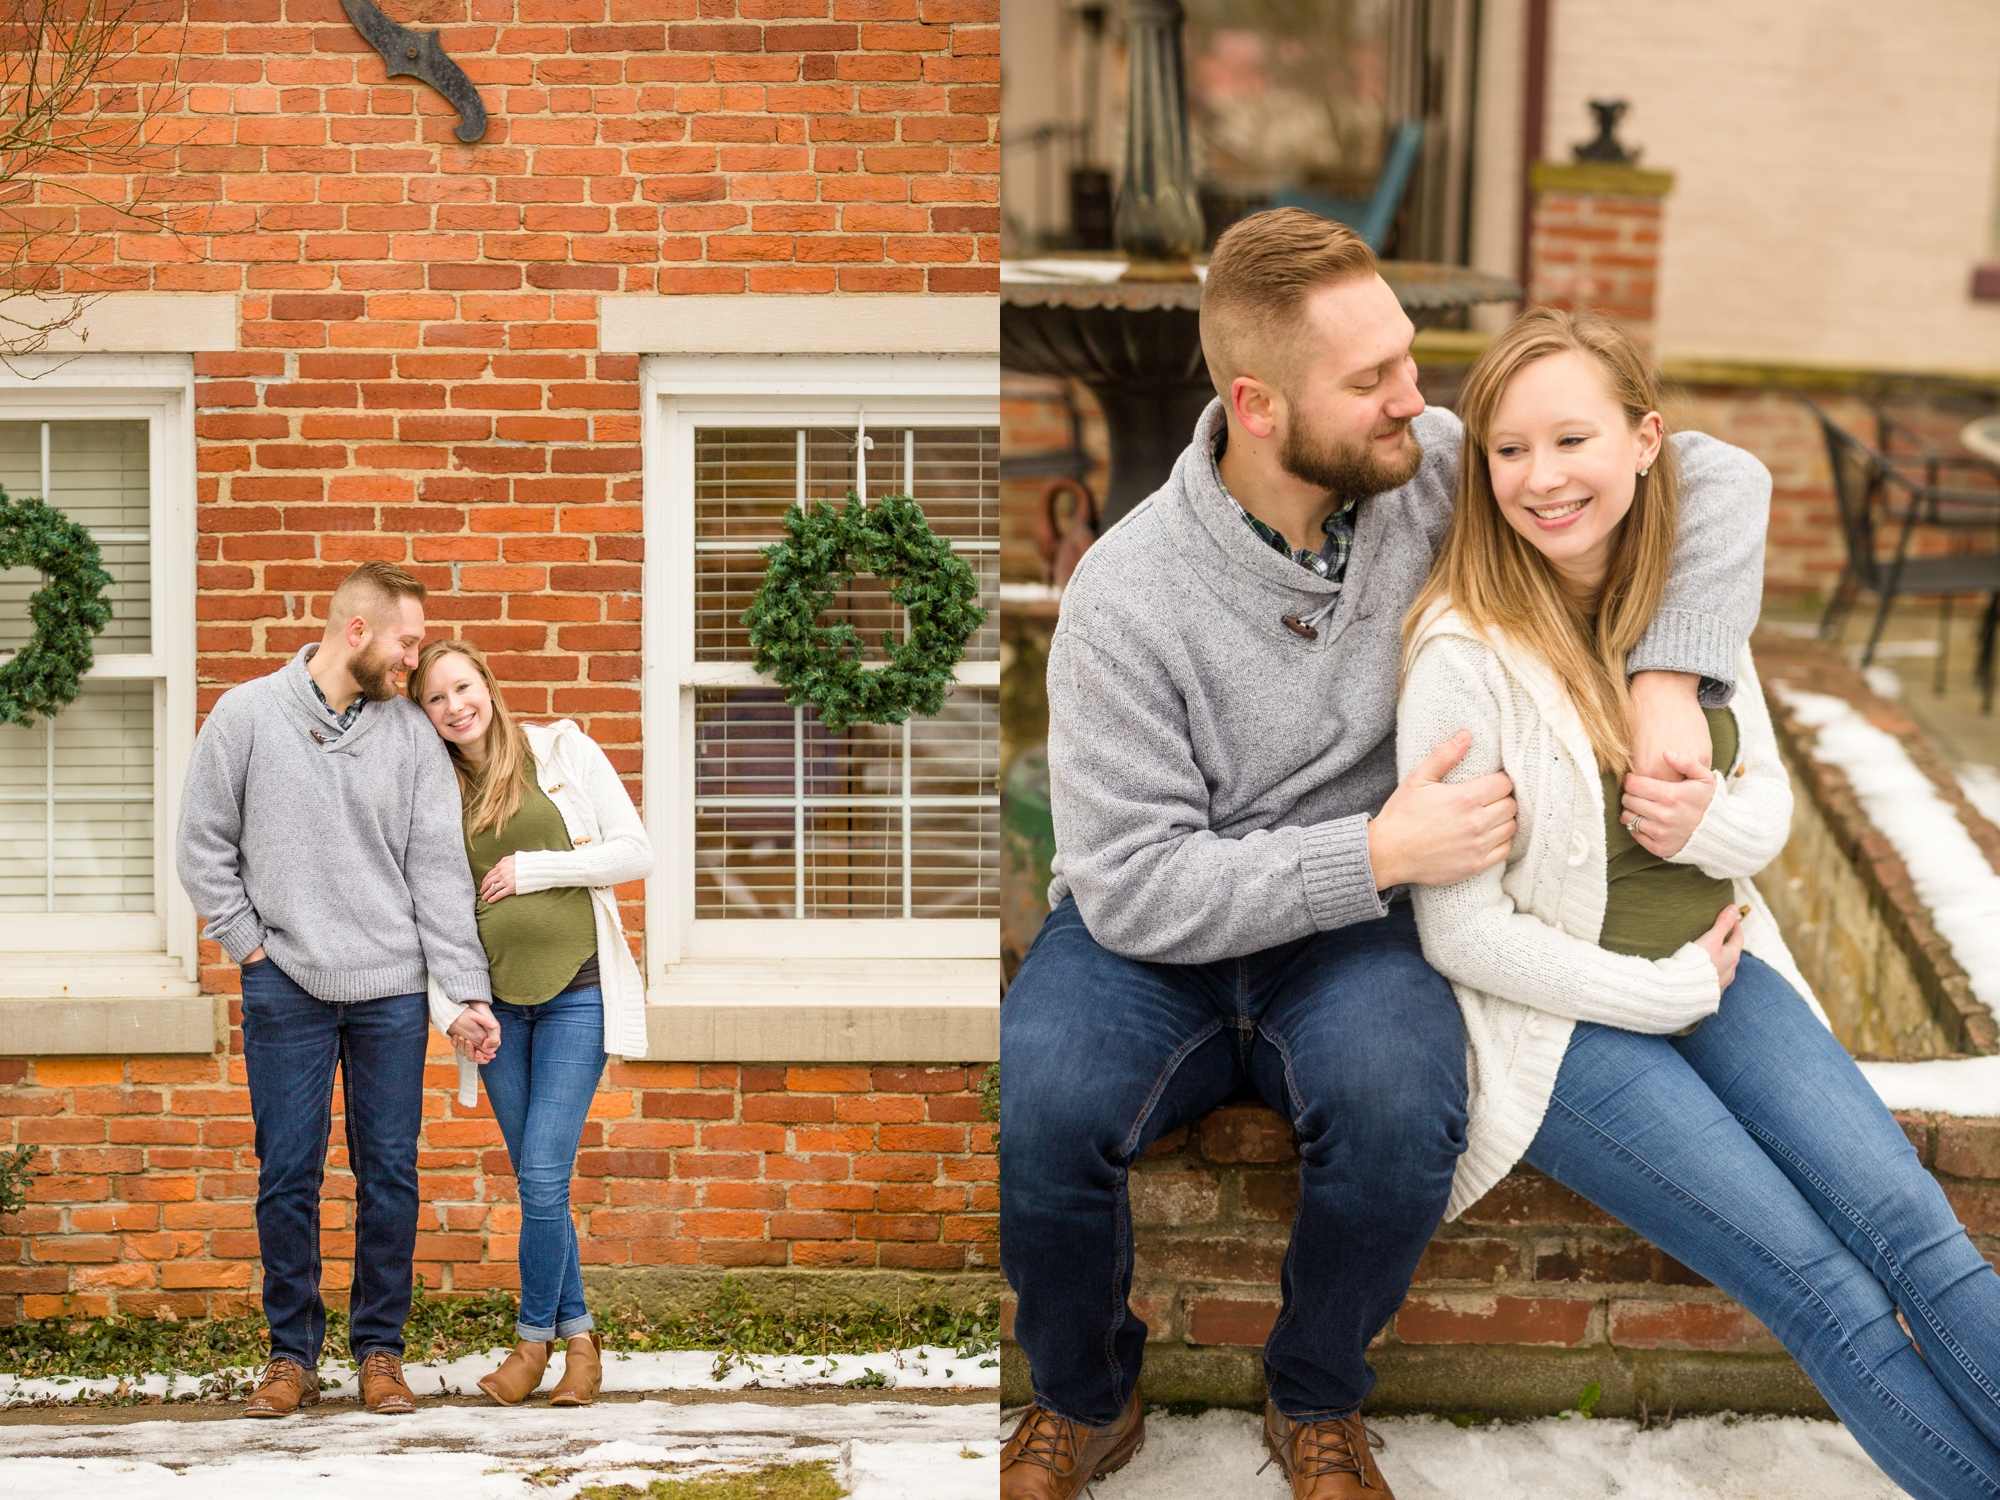 pittsburgh maternity photographer, pittsburgh maternity photos, pittsburgh family photographer, historic harmony photos, cranberry township family photographer